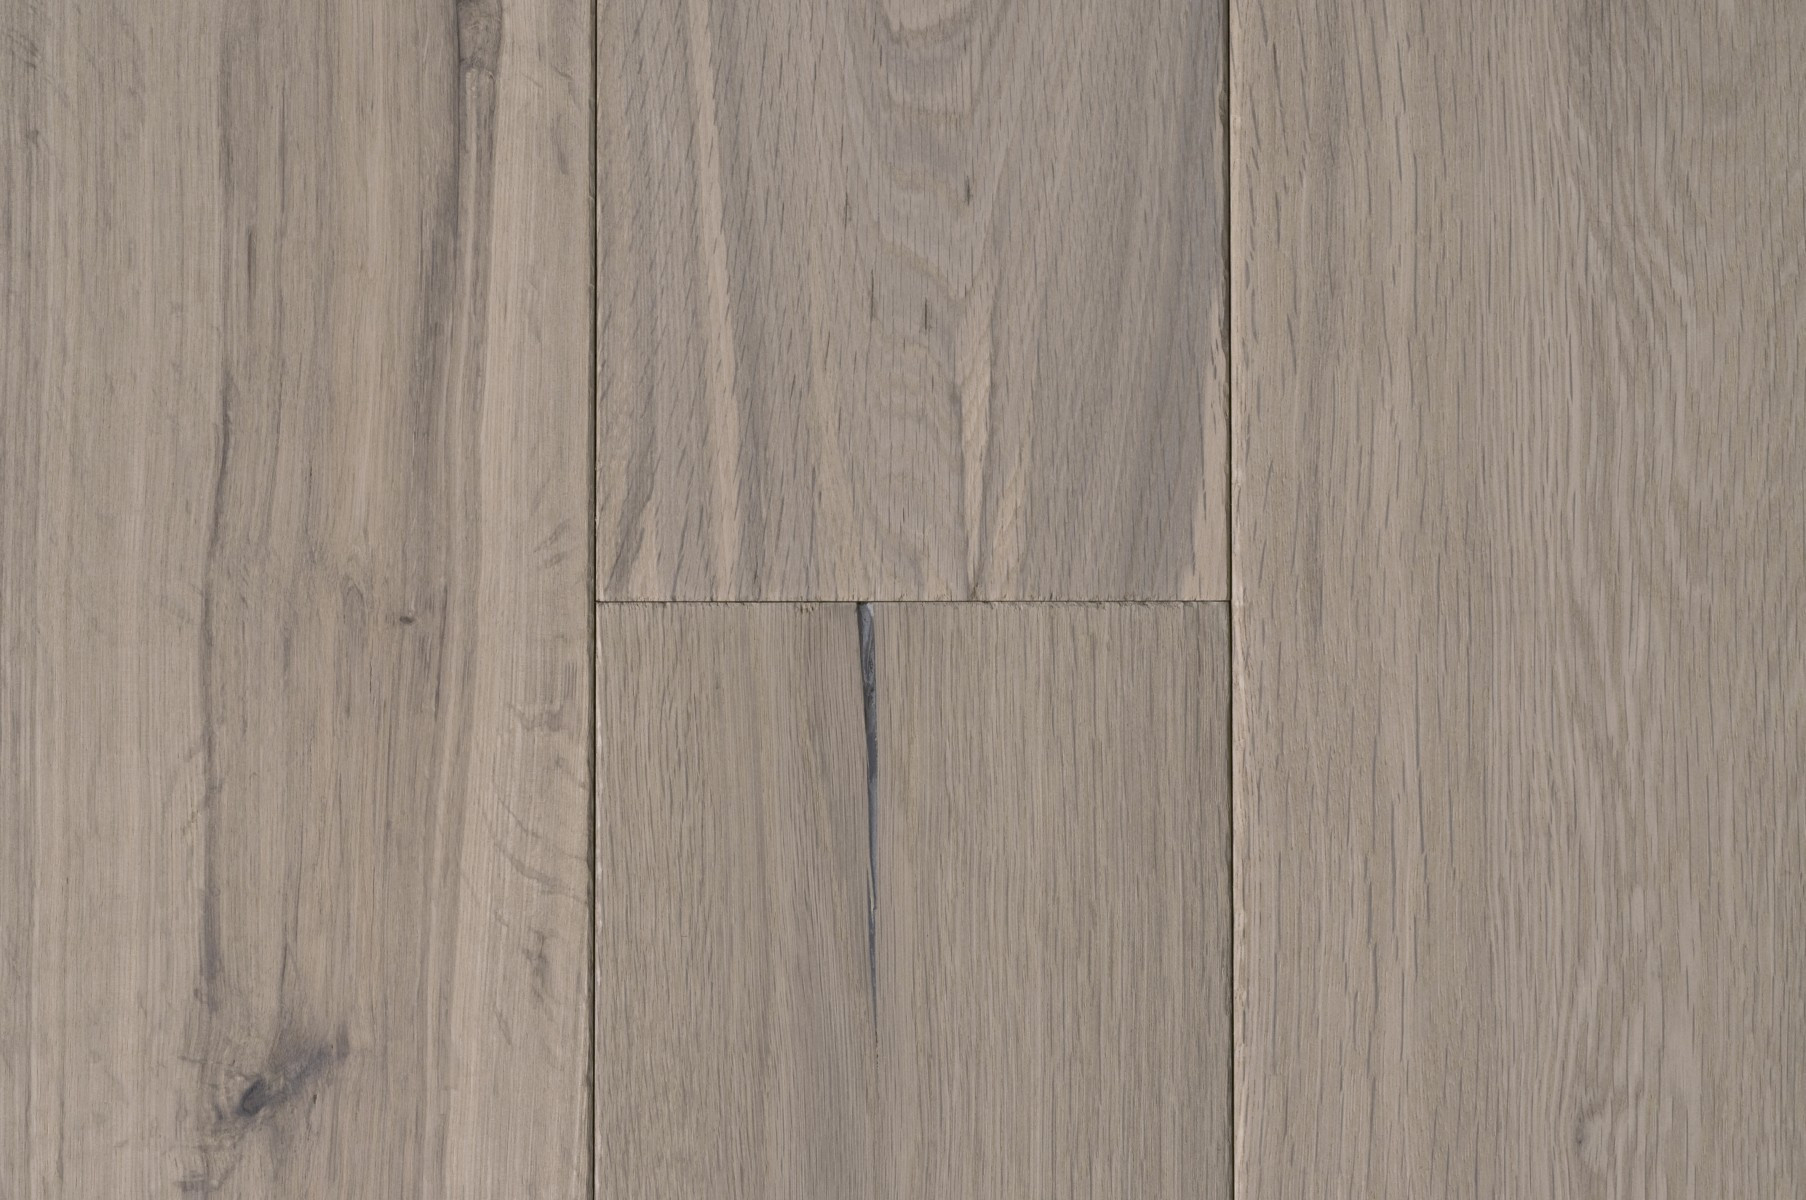 Walnut Hardwood Flooring Reviews Of Duchateau Hardwood Flooring Houston Tx Discount Engineered Wood with Antique White European Oak